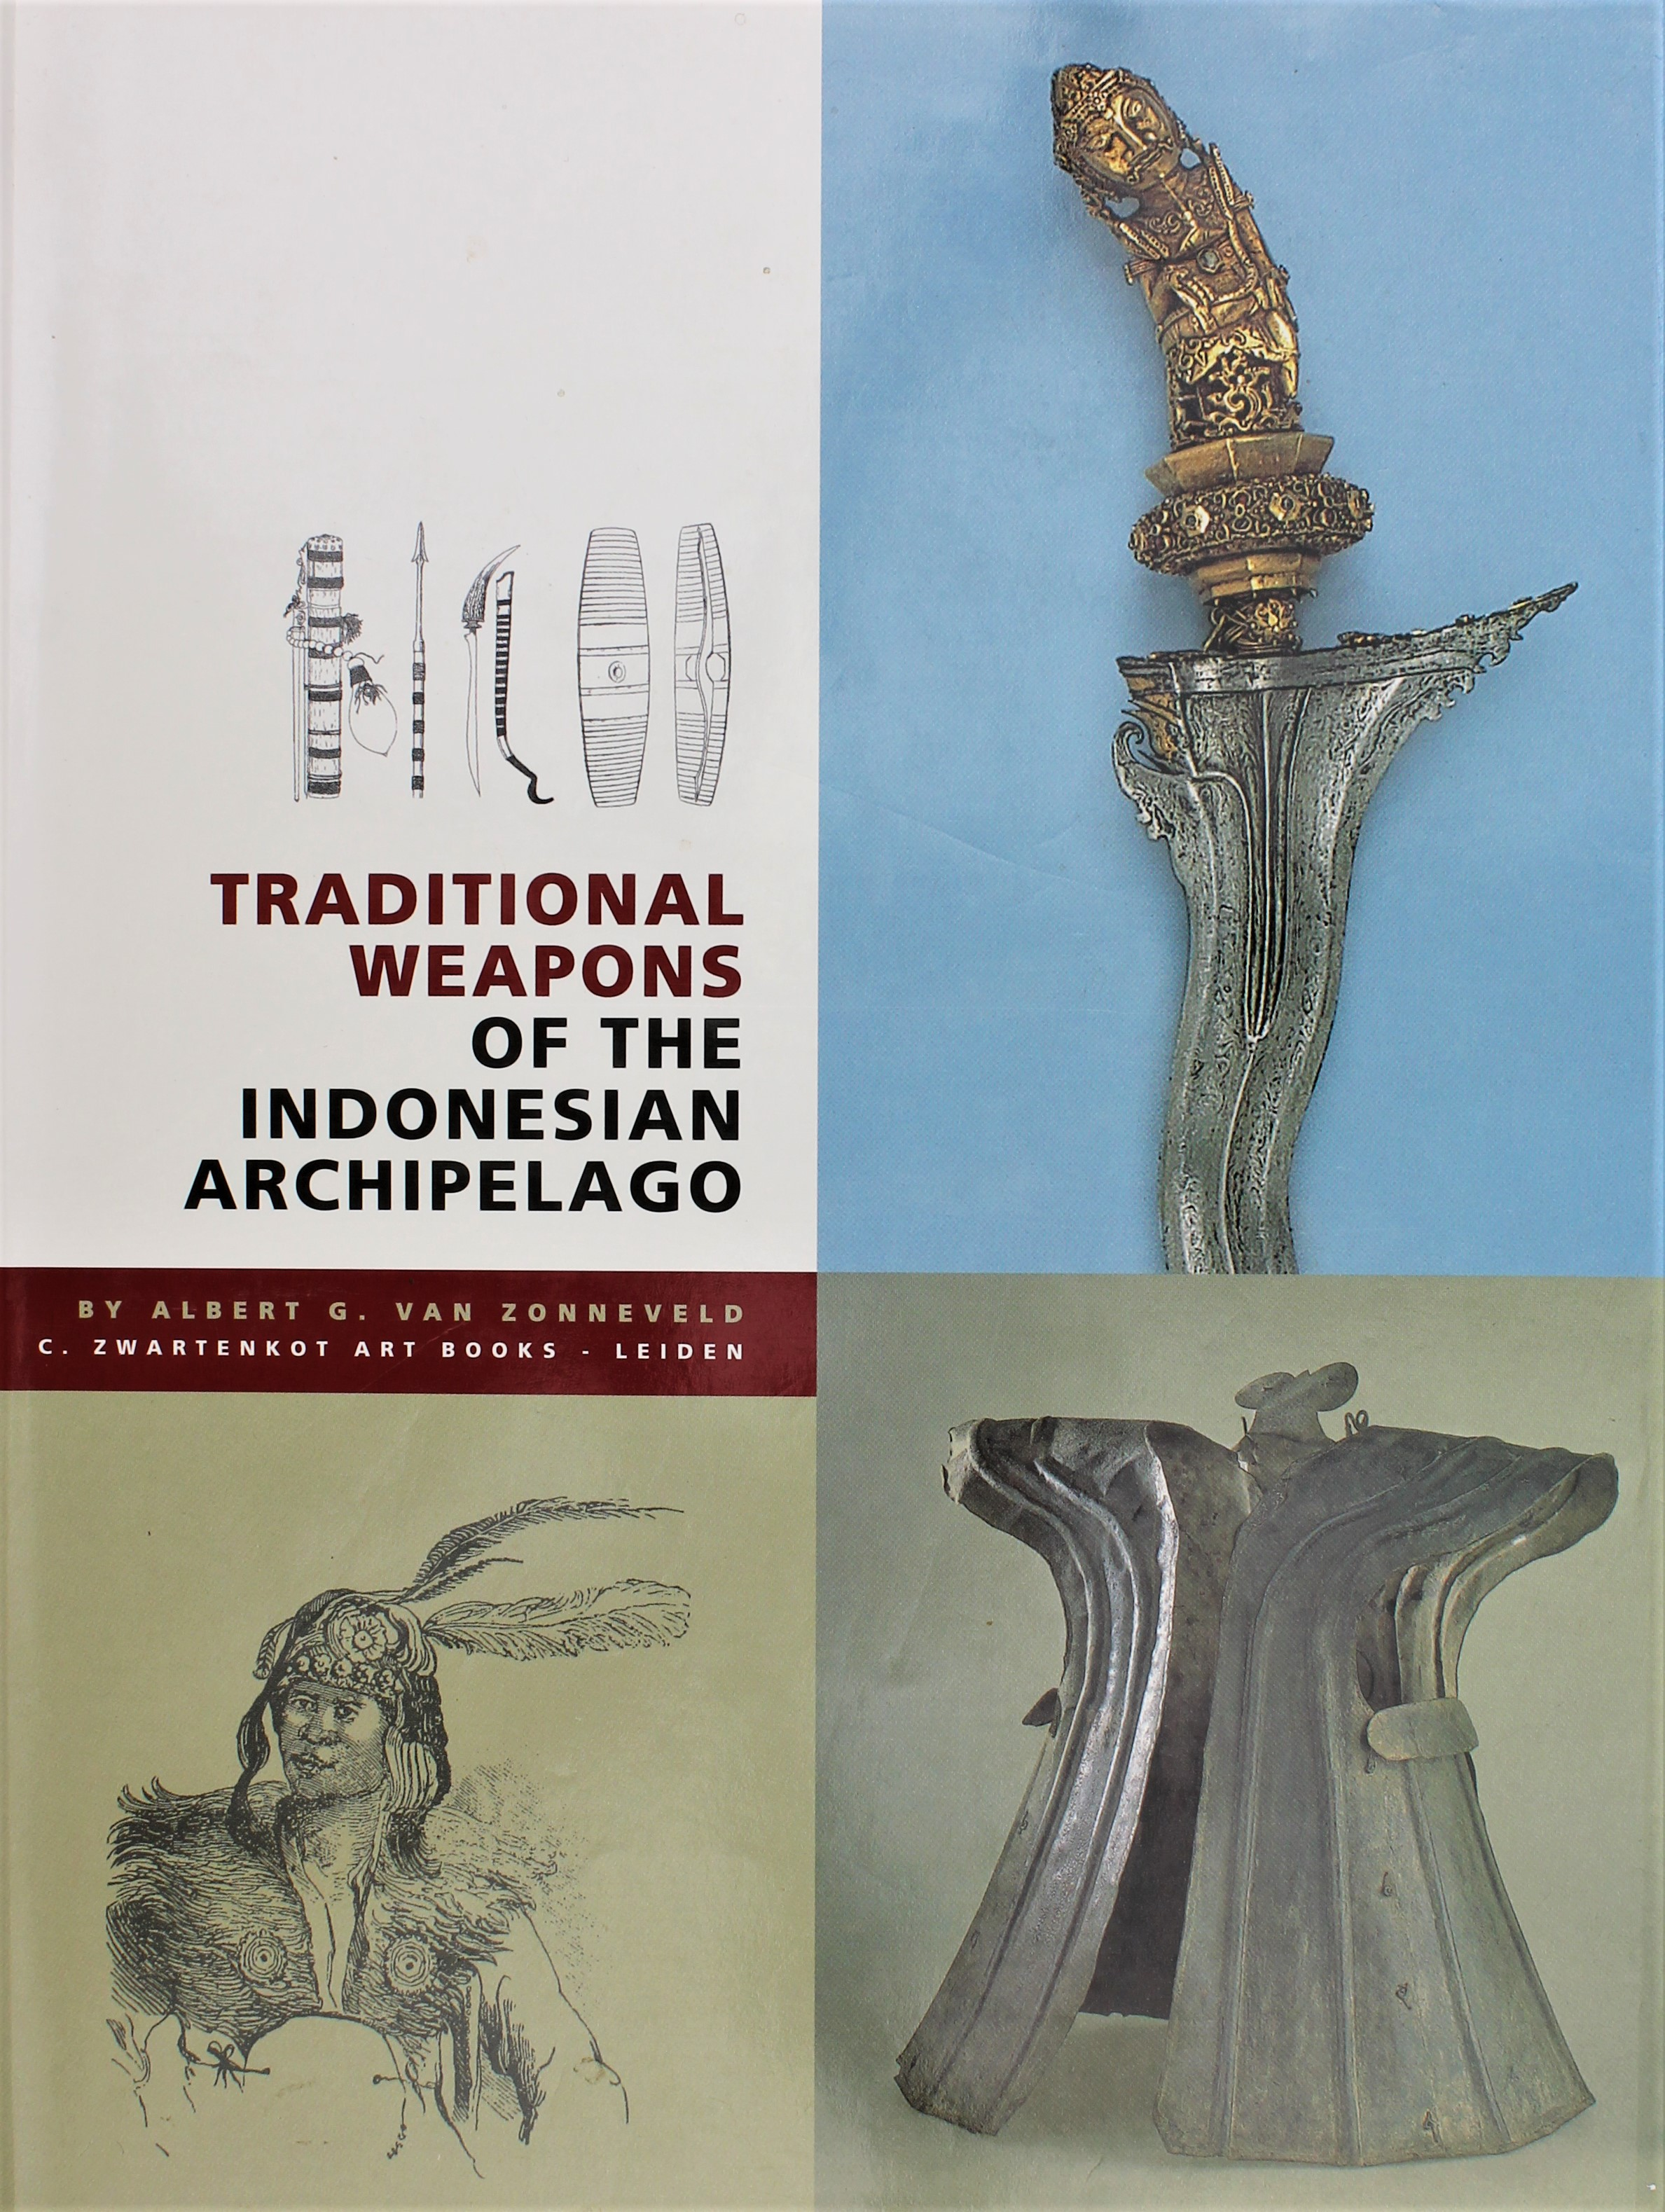 Traditional weapons of the Indonesian archipelago Albert G. van Zonneveld